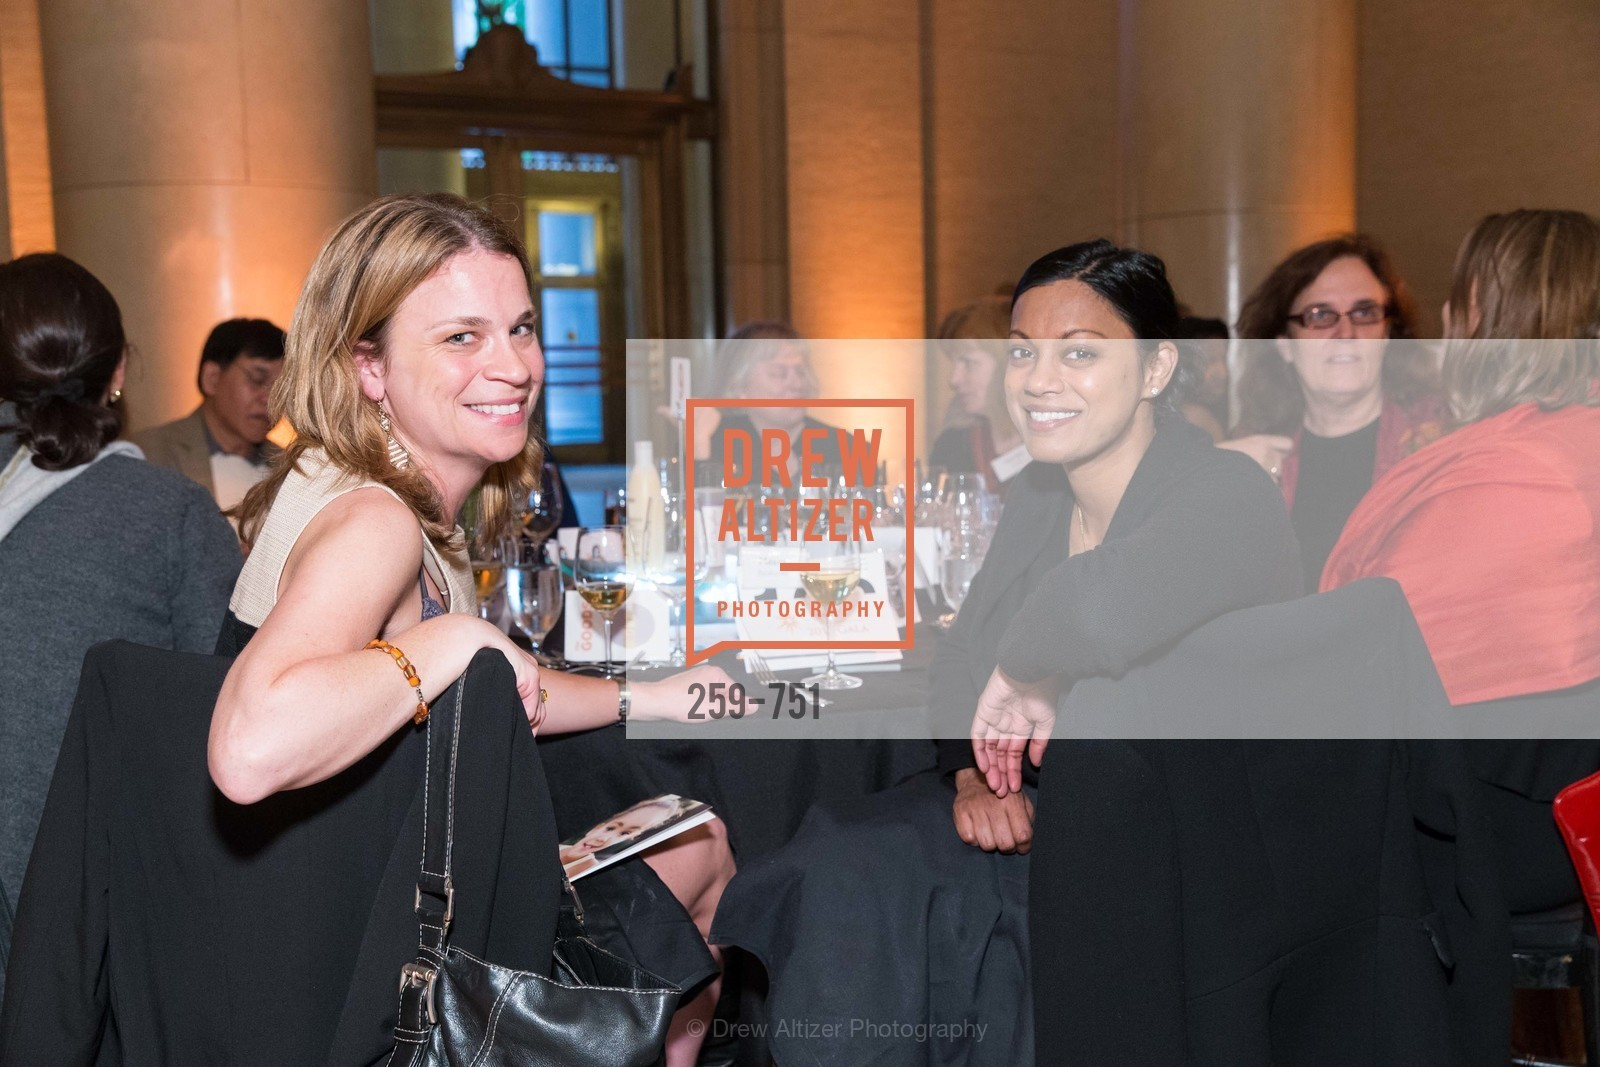 Anne Boyd Rabkin, Meera Balakumar, CENTER FOR ENVIRONMENTAL HEALTH (CEH) 2015 Gala, Bently Reserve, May 28th, 2015,Drew Altizer, Drew Altizer Photography, full-service agency, private events, San Francisco photographer, photographer california